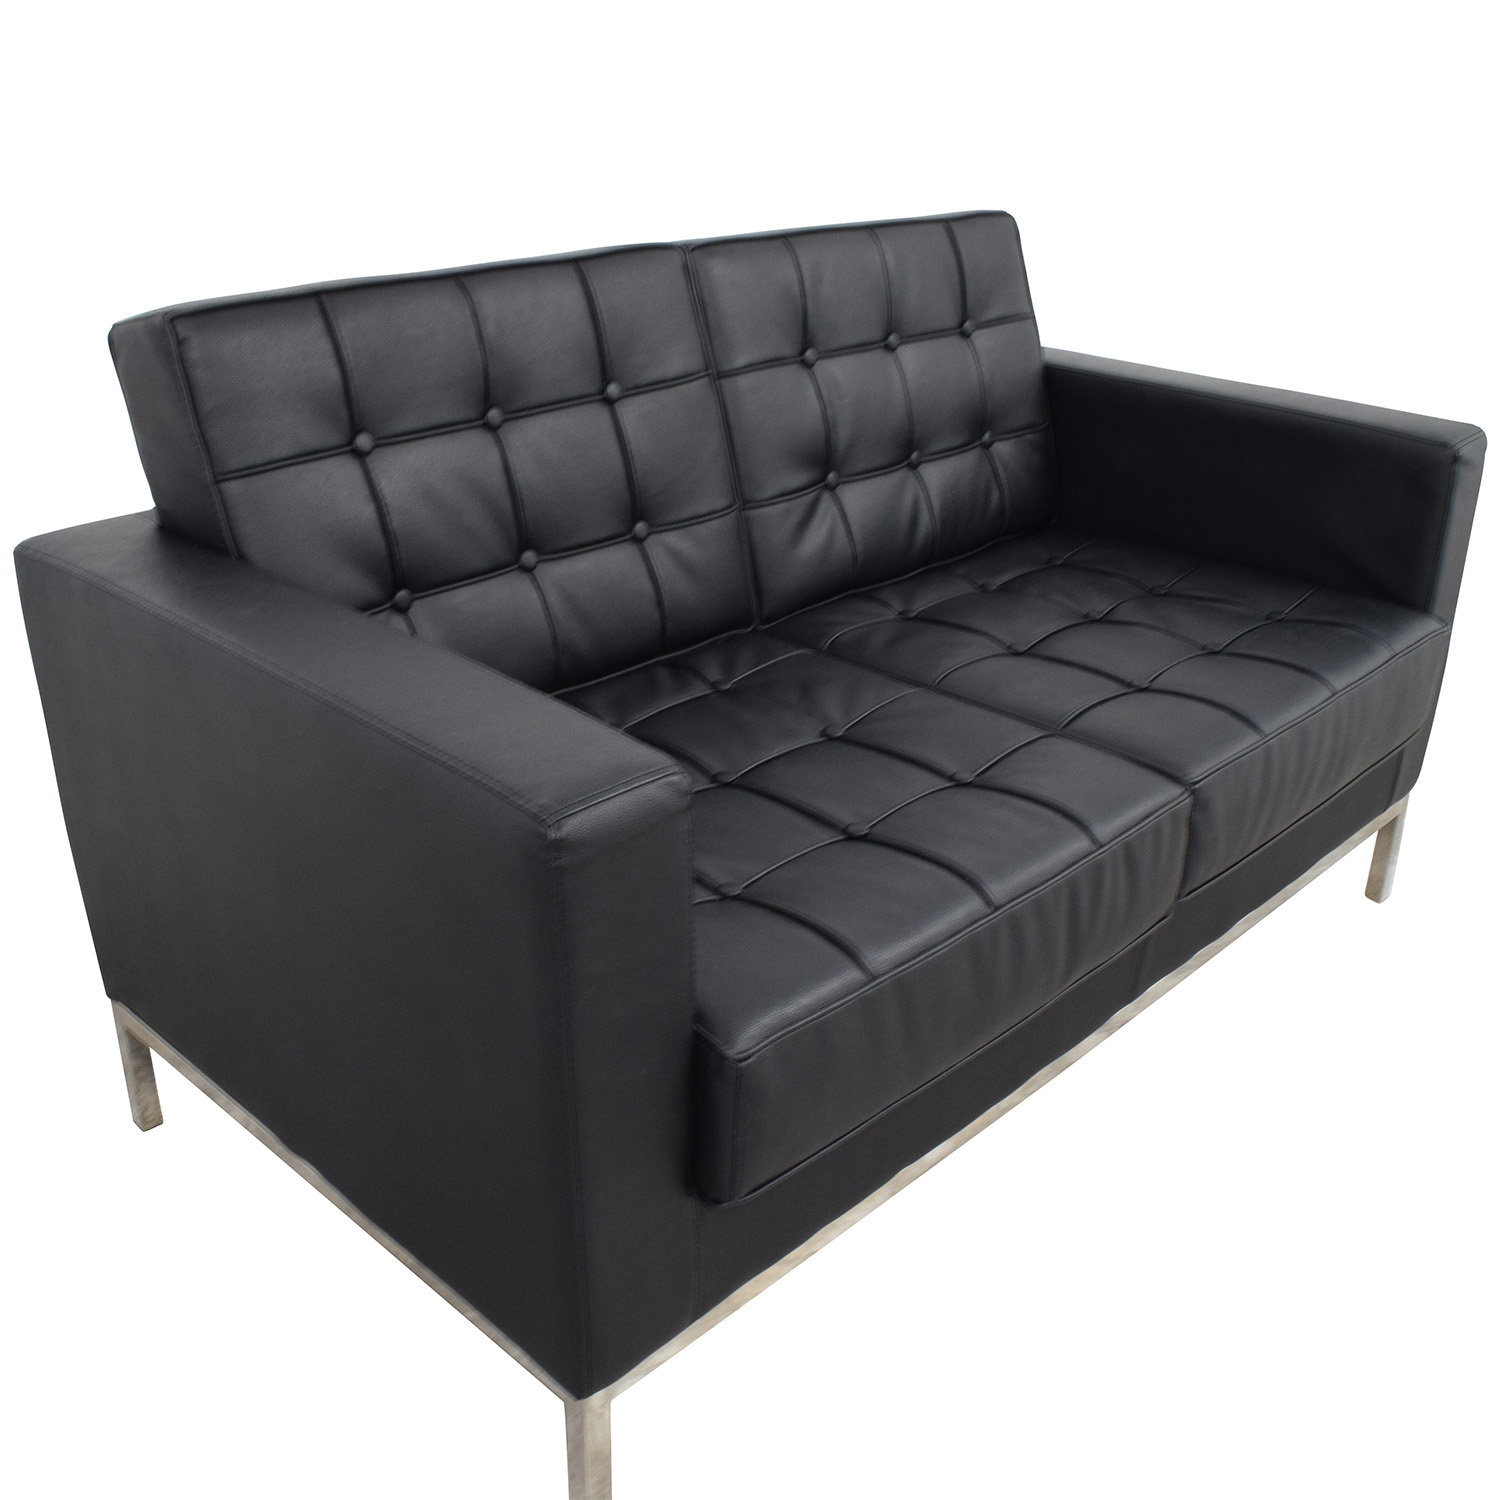 lacey series lacey series black leather loveseat dimensions - Black Leather Loveseat